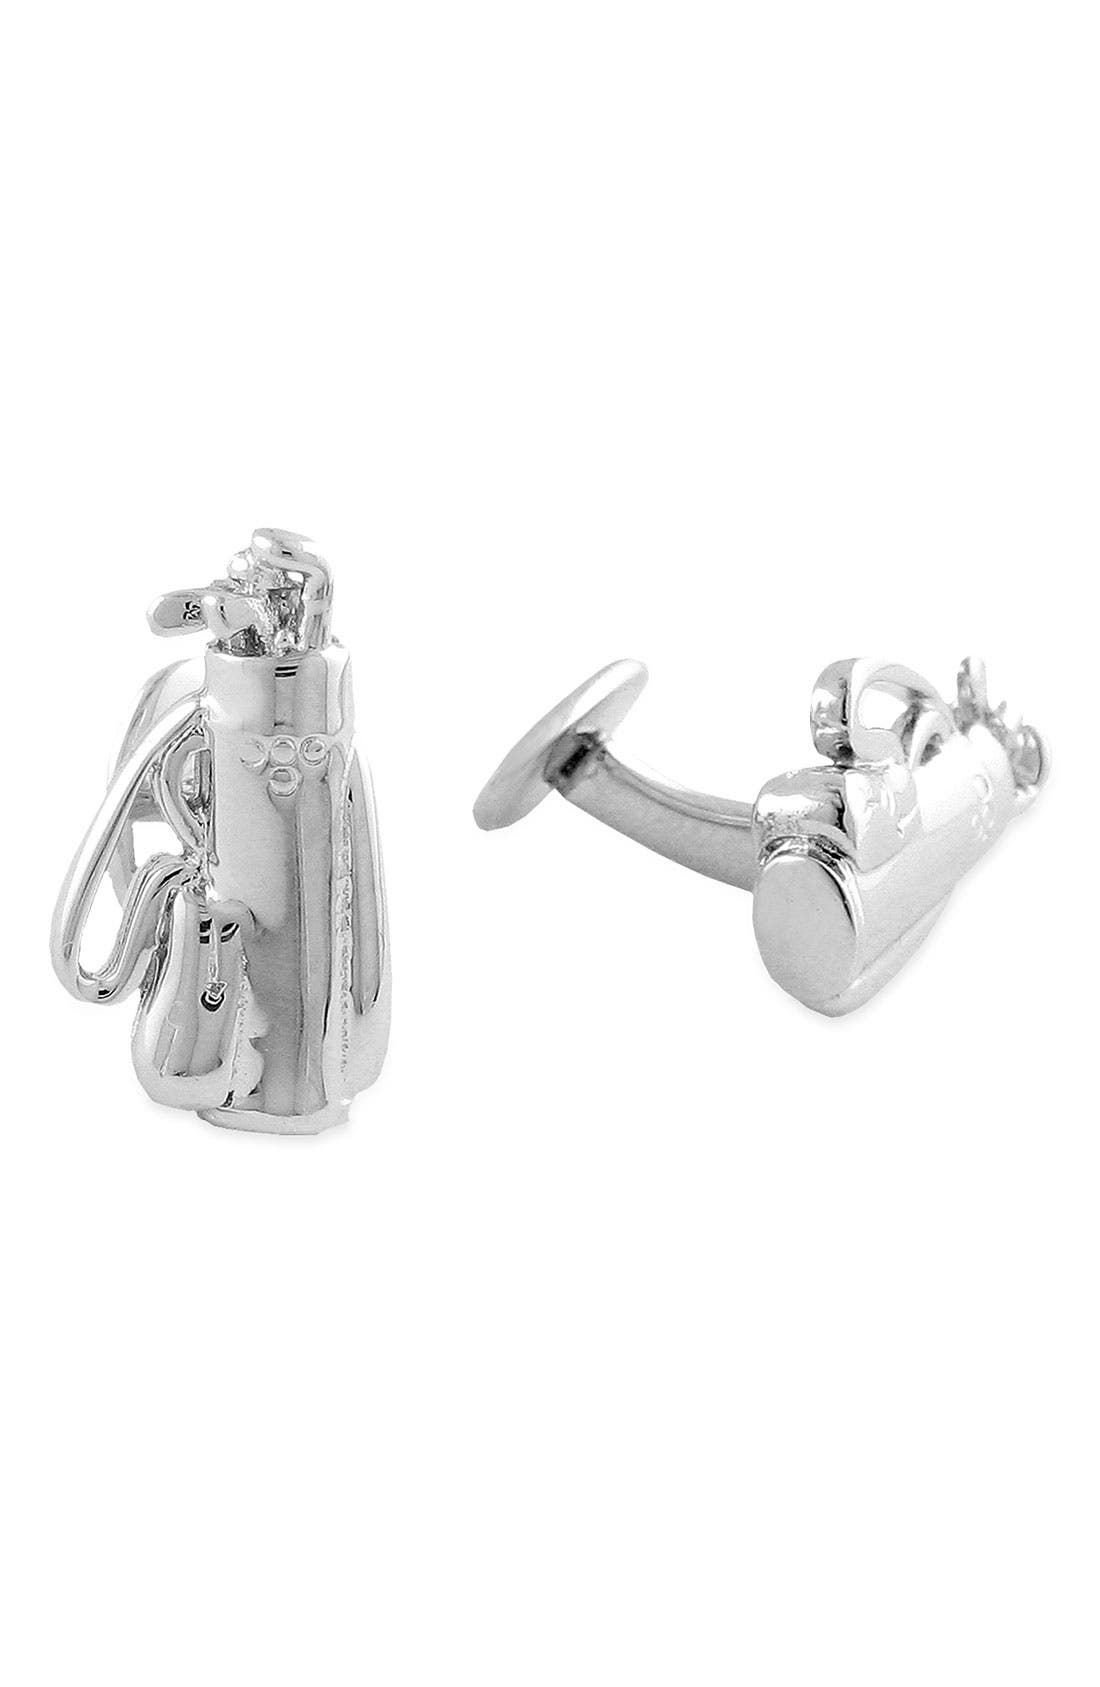 'Golf' Sterling Silver Cuff Links,                             Main thumbnail 4, color,